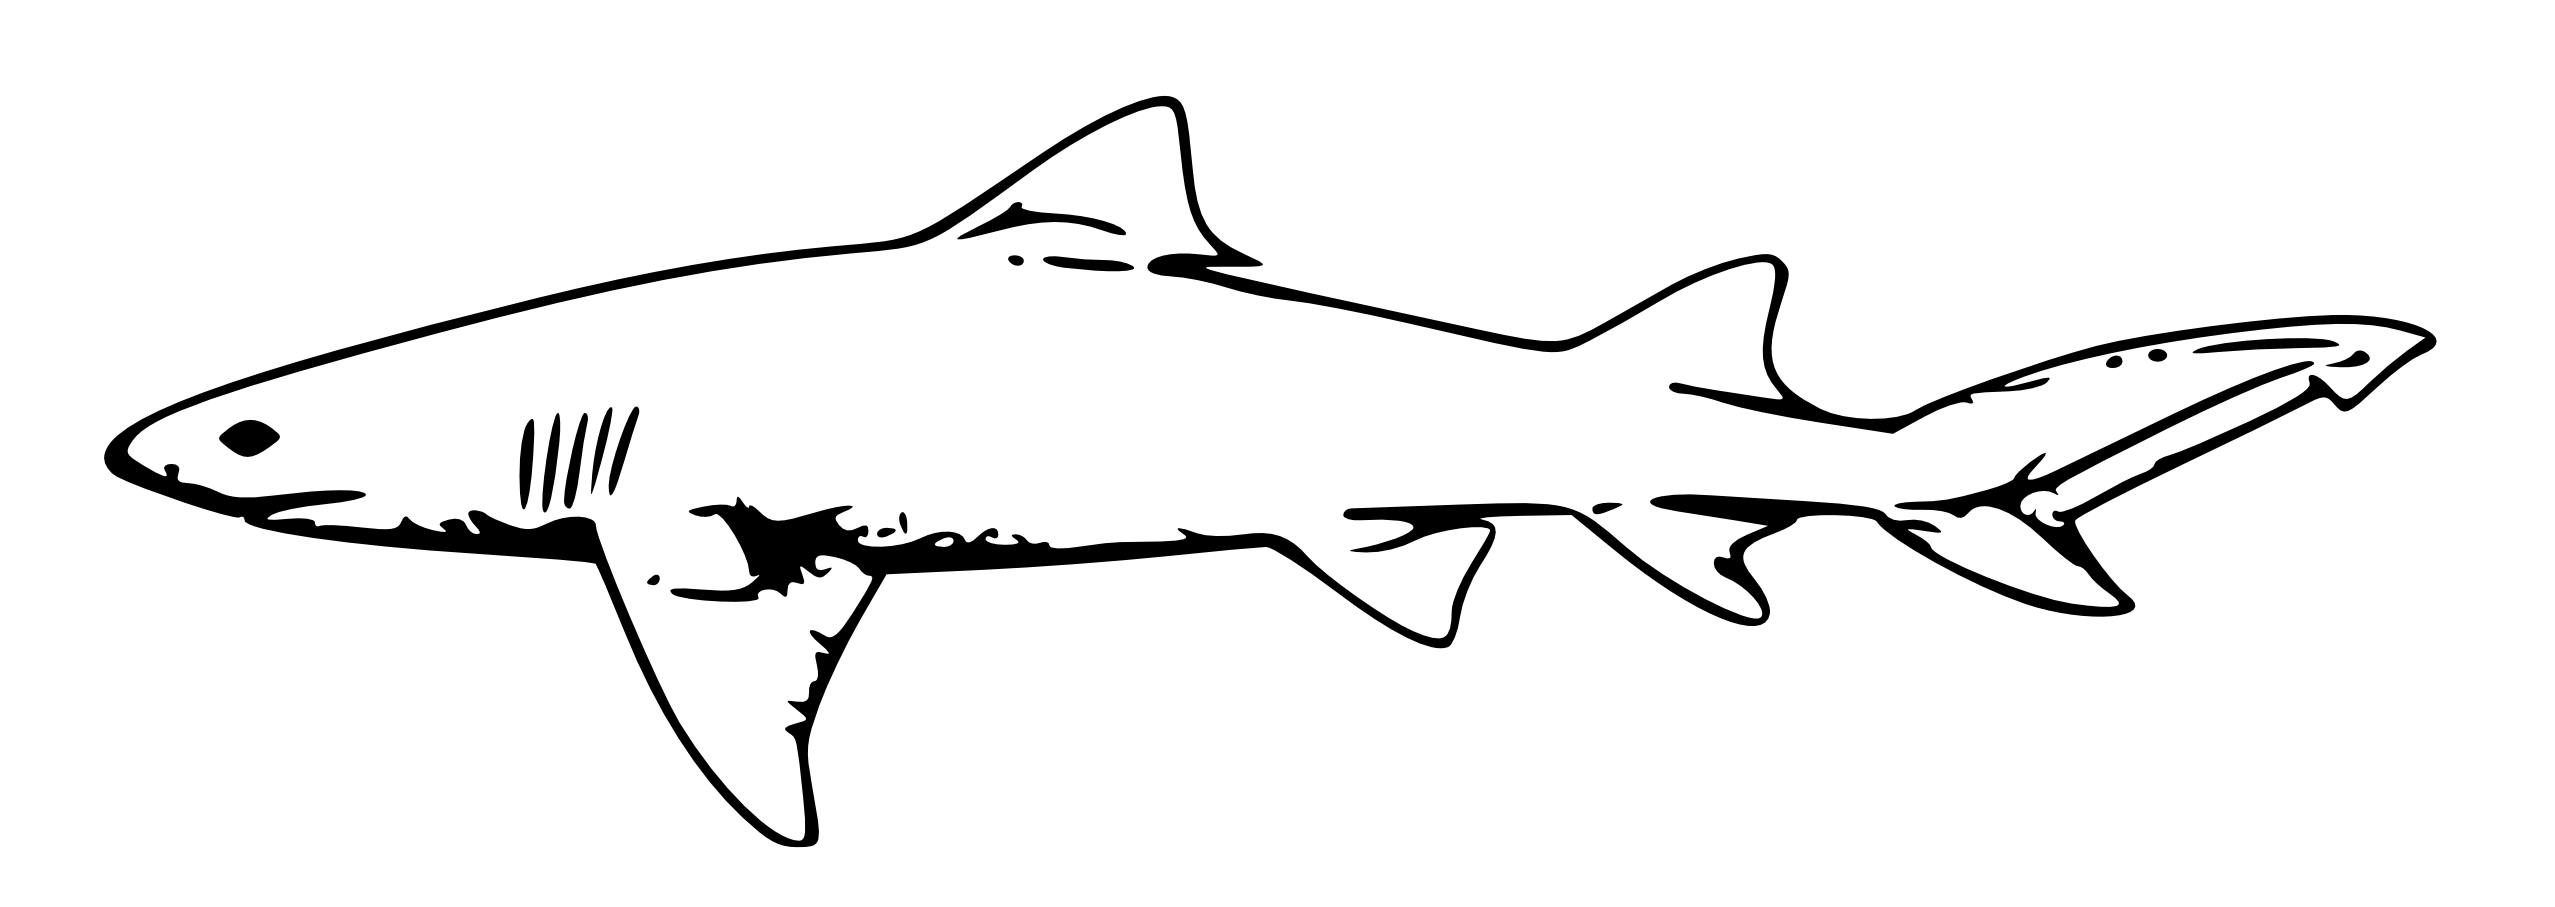 Free Great White Shark Clipart Download Free Clip Art